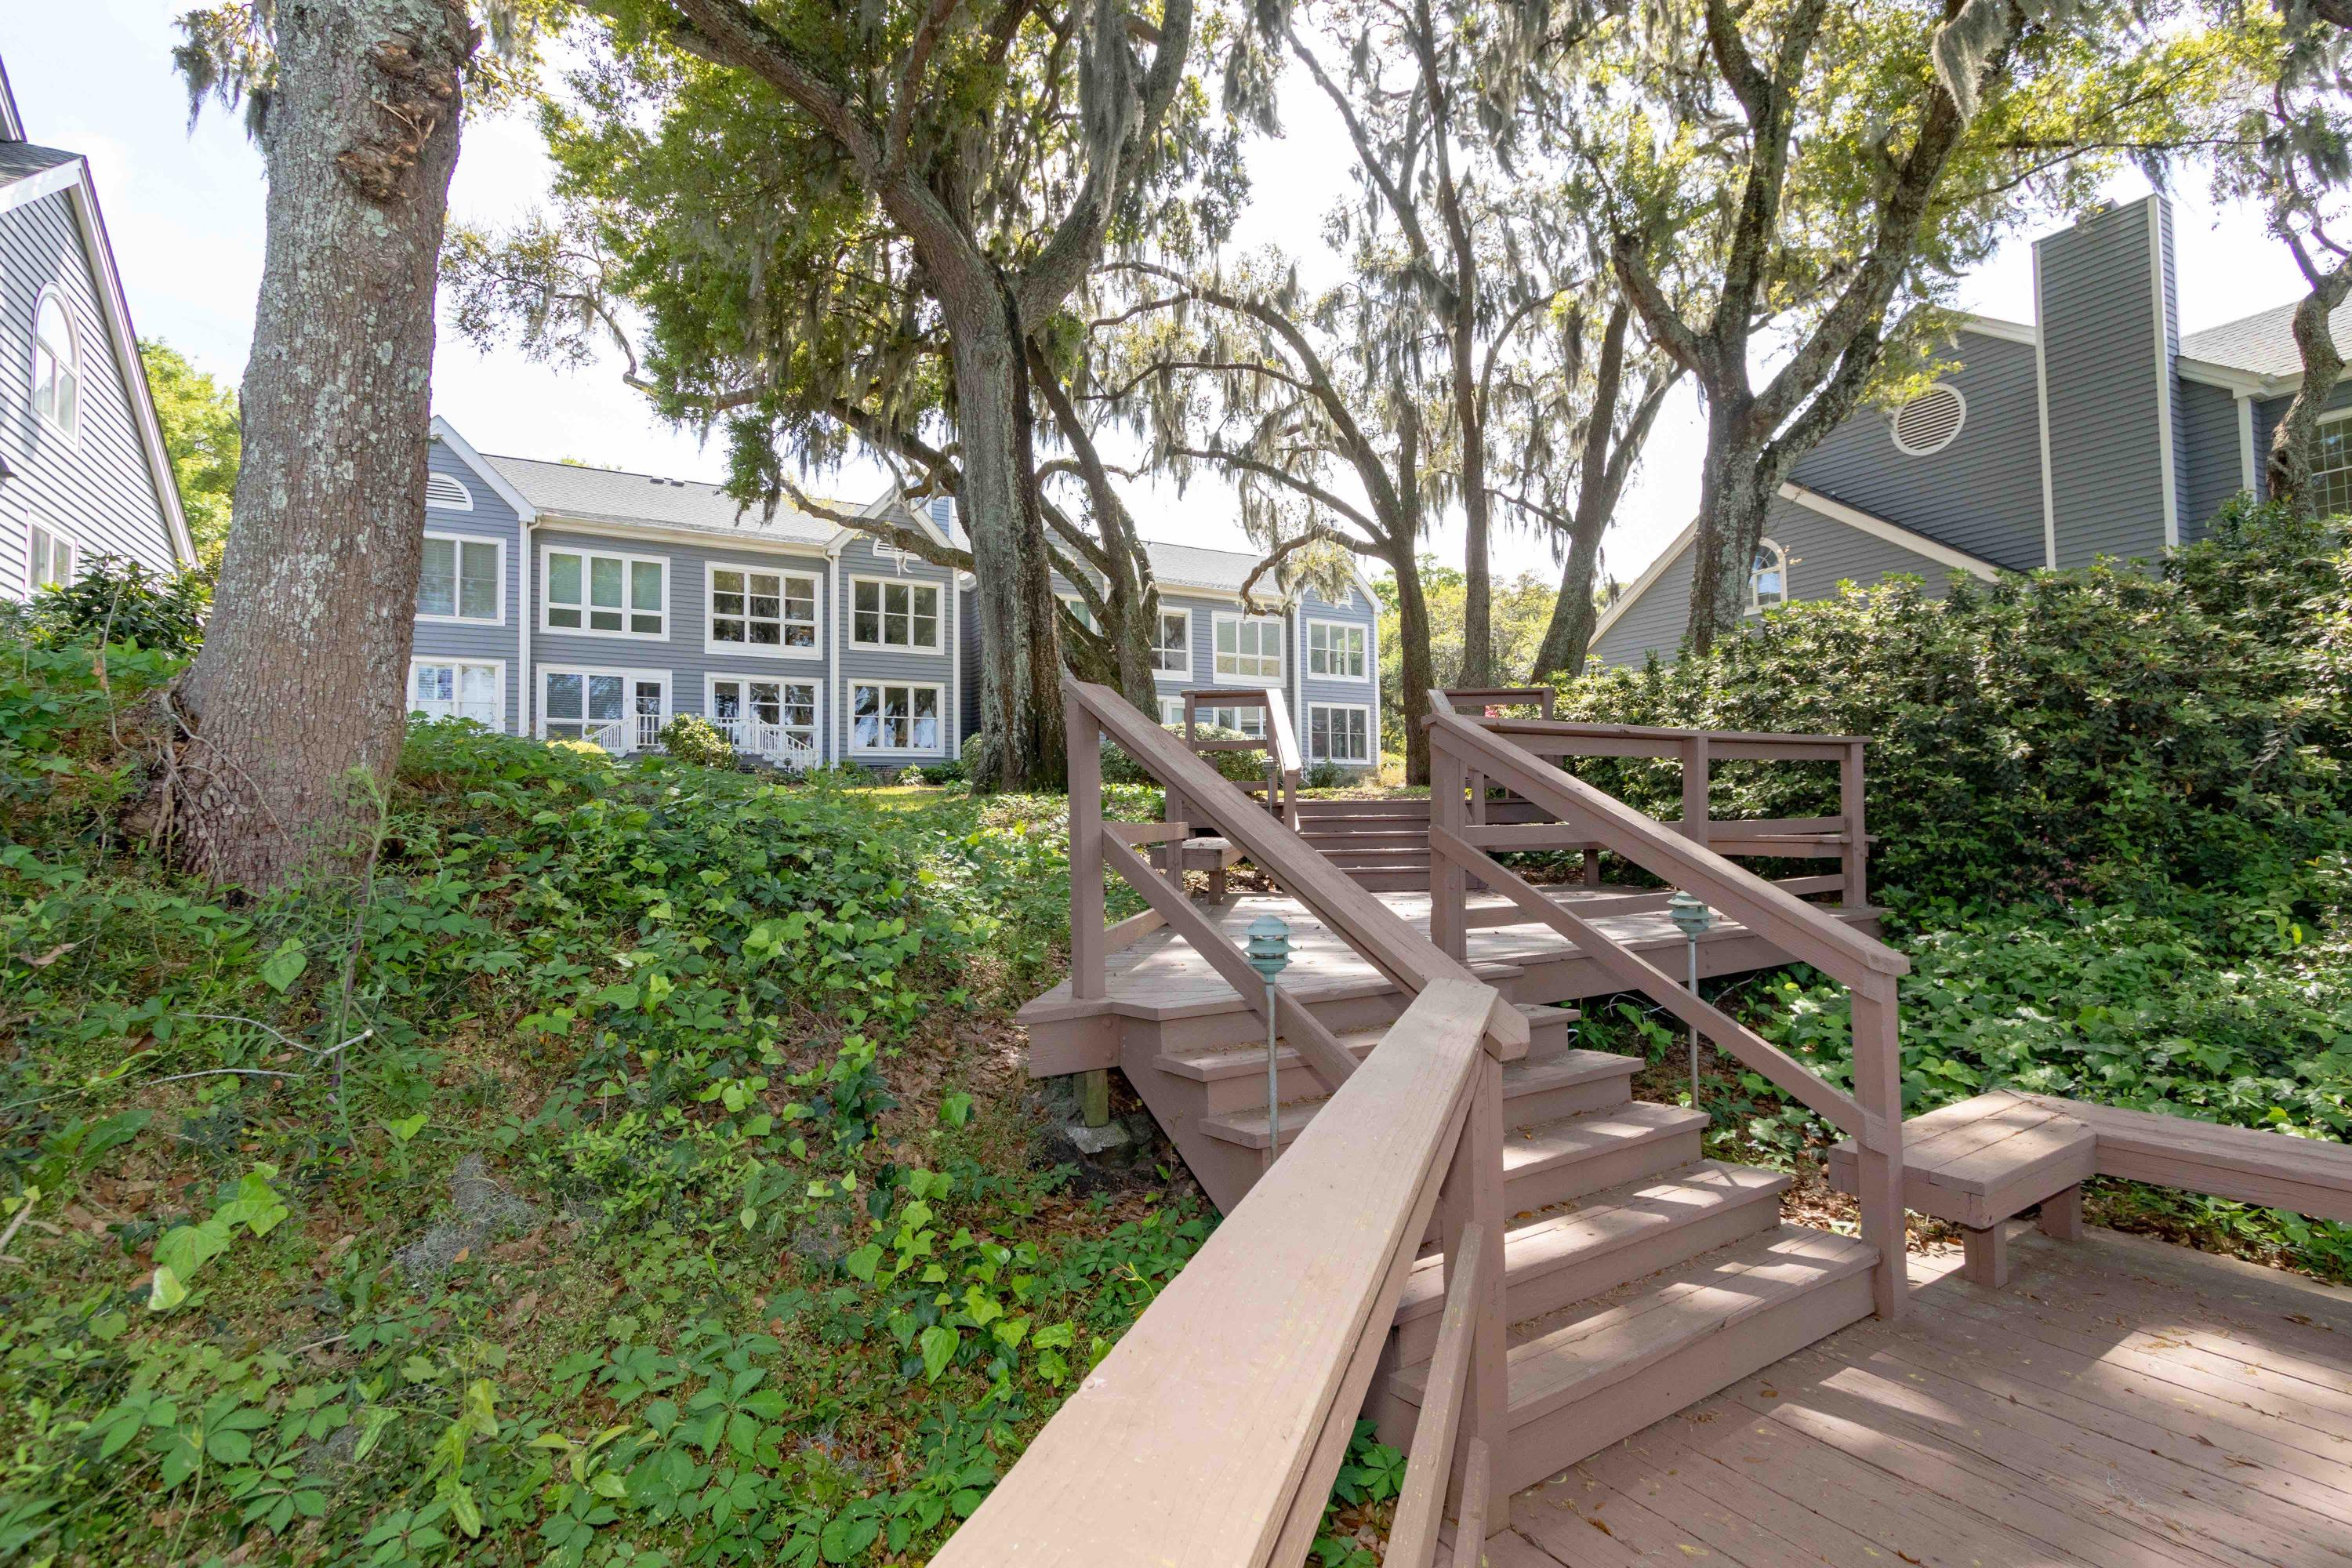 Waterfront Plantation Homes For Sale - 107 Waterfront Plantation, Charleston, SC - 28